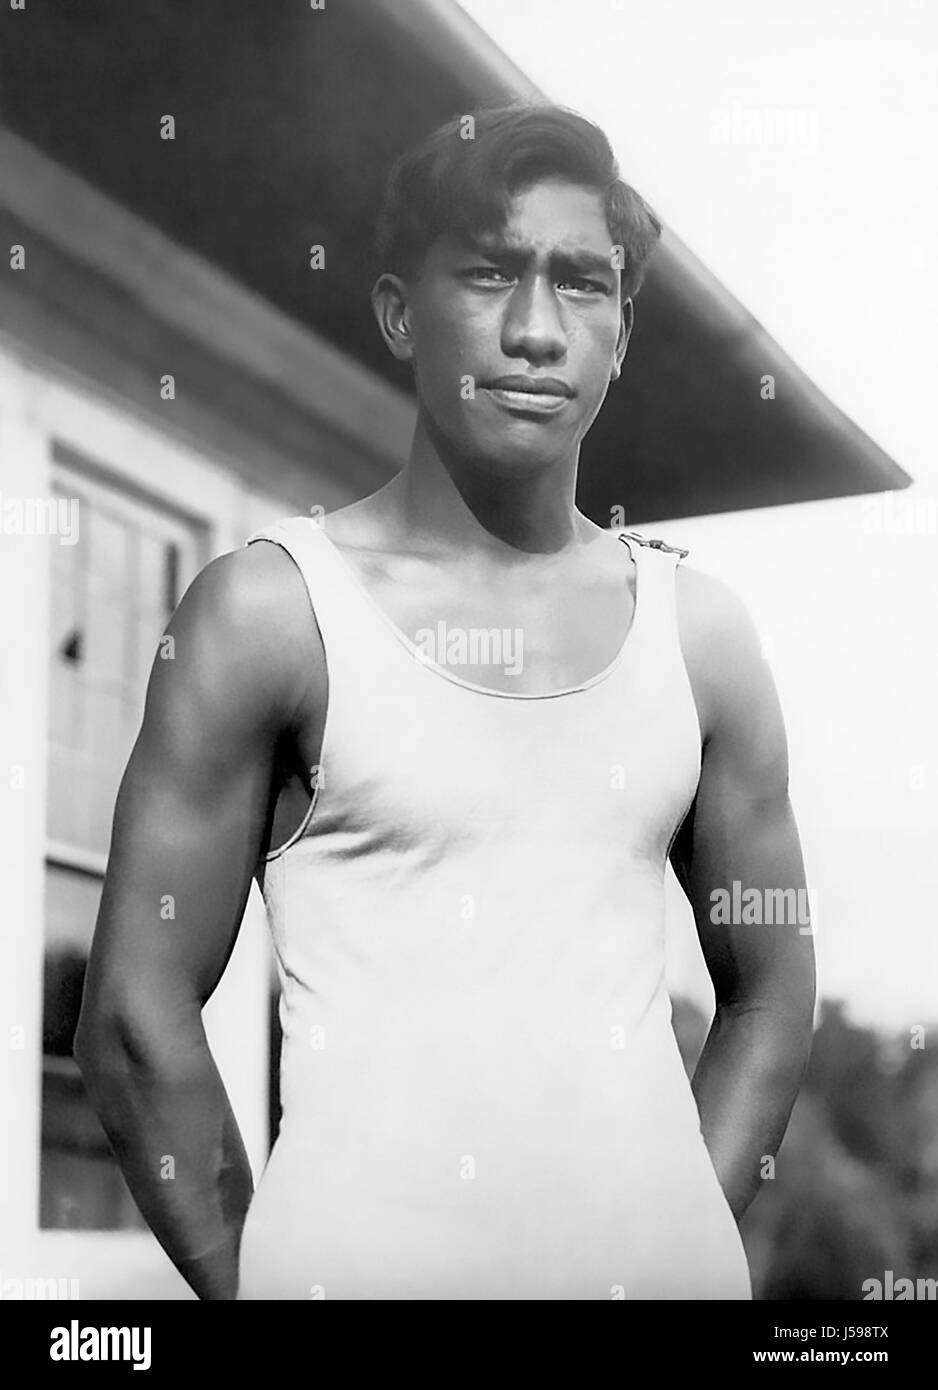 DUKE KAHANAMOKU (1890-1968) Hawaiian Olympic swimmer and surfing pioneer, about 1911 - Stock Image